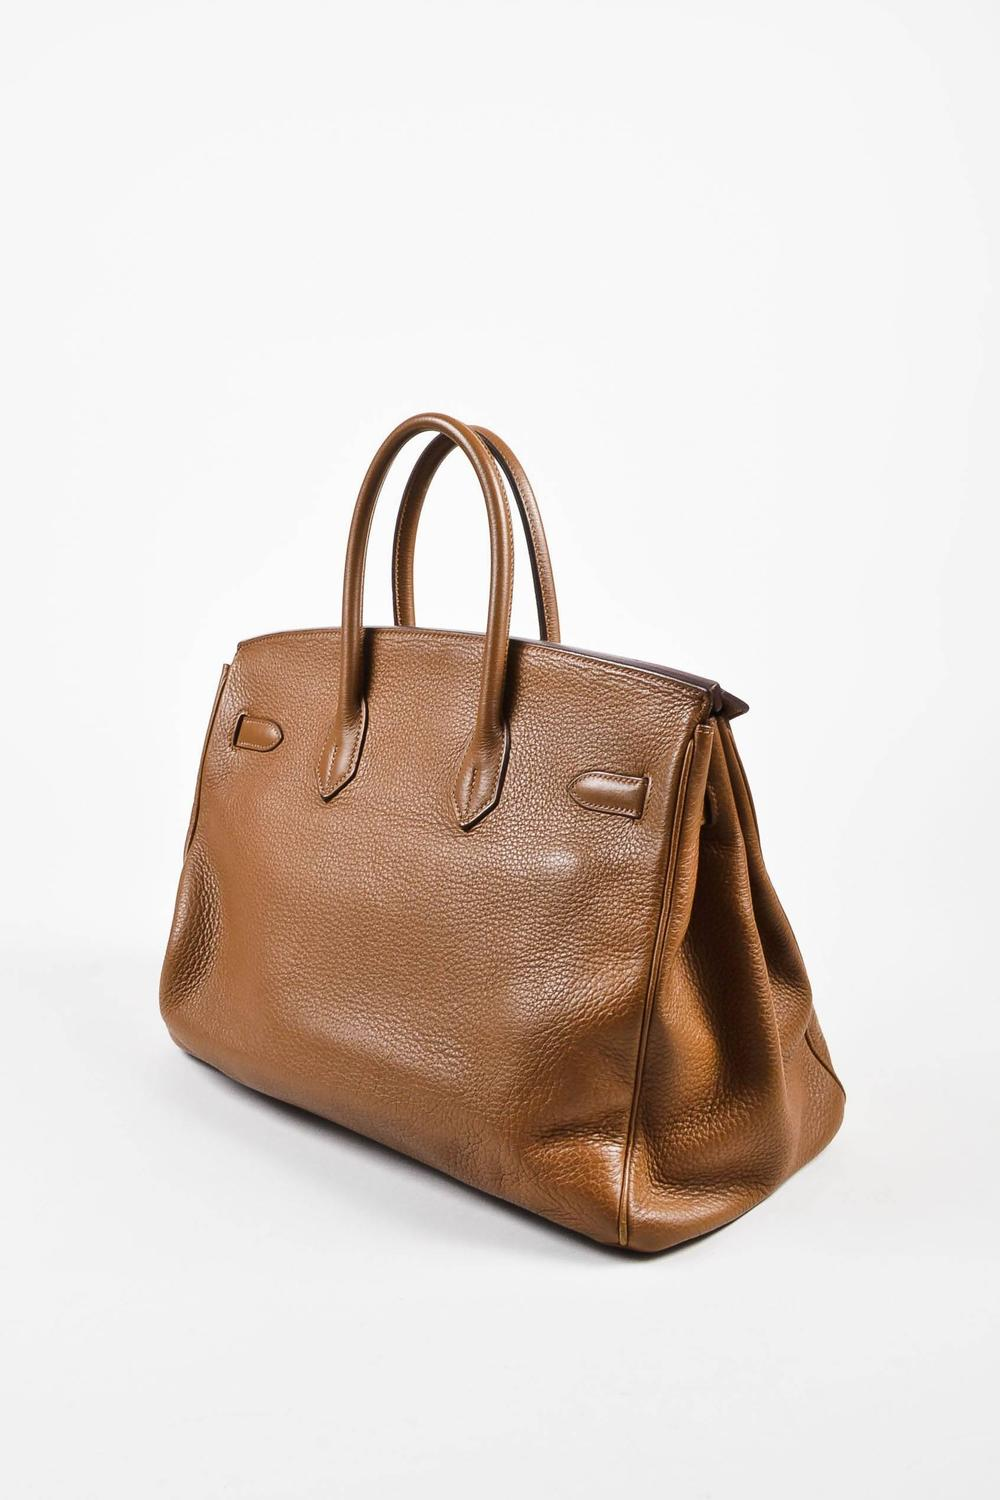 replica hermes - Hermes Alezan Brown Clemence Leather Silver Tone Hardware 35 cm ...